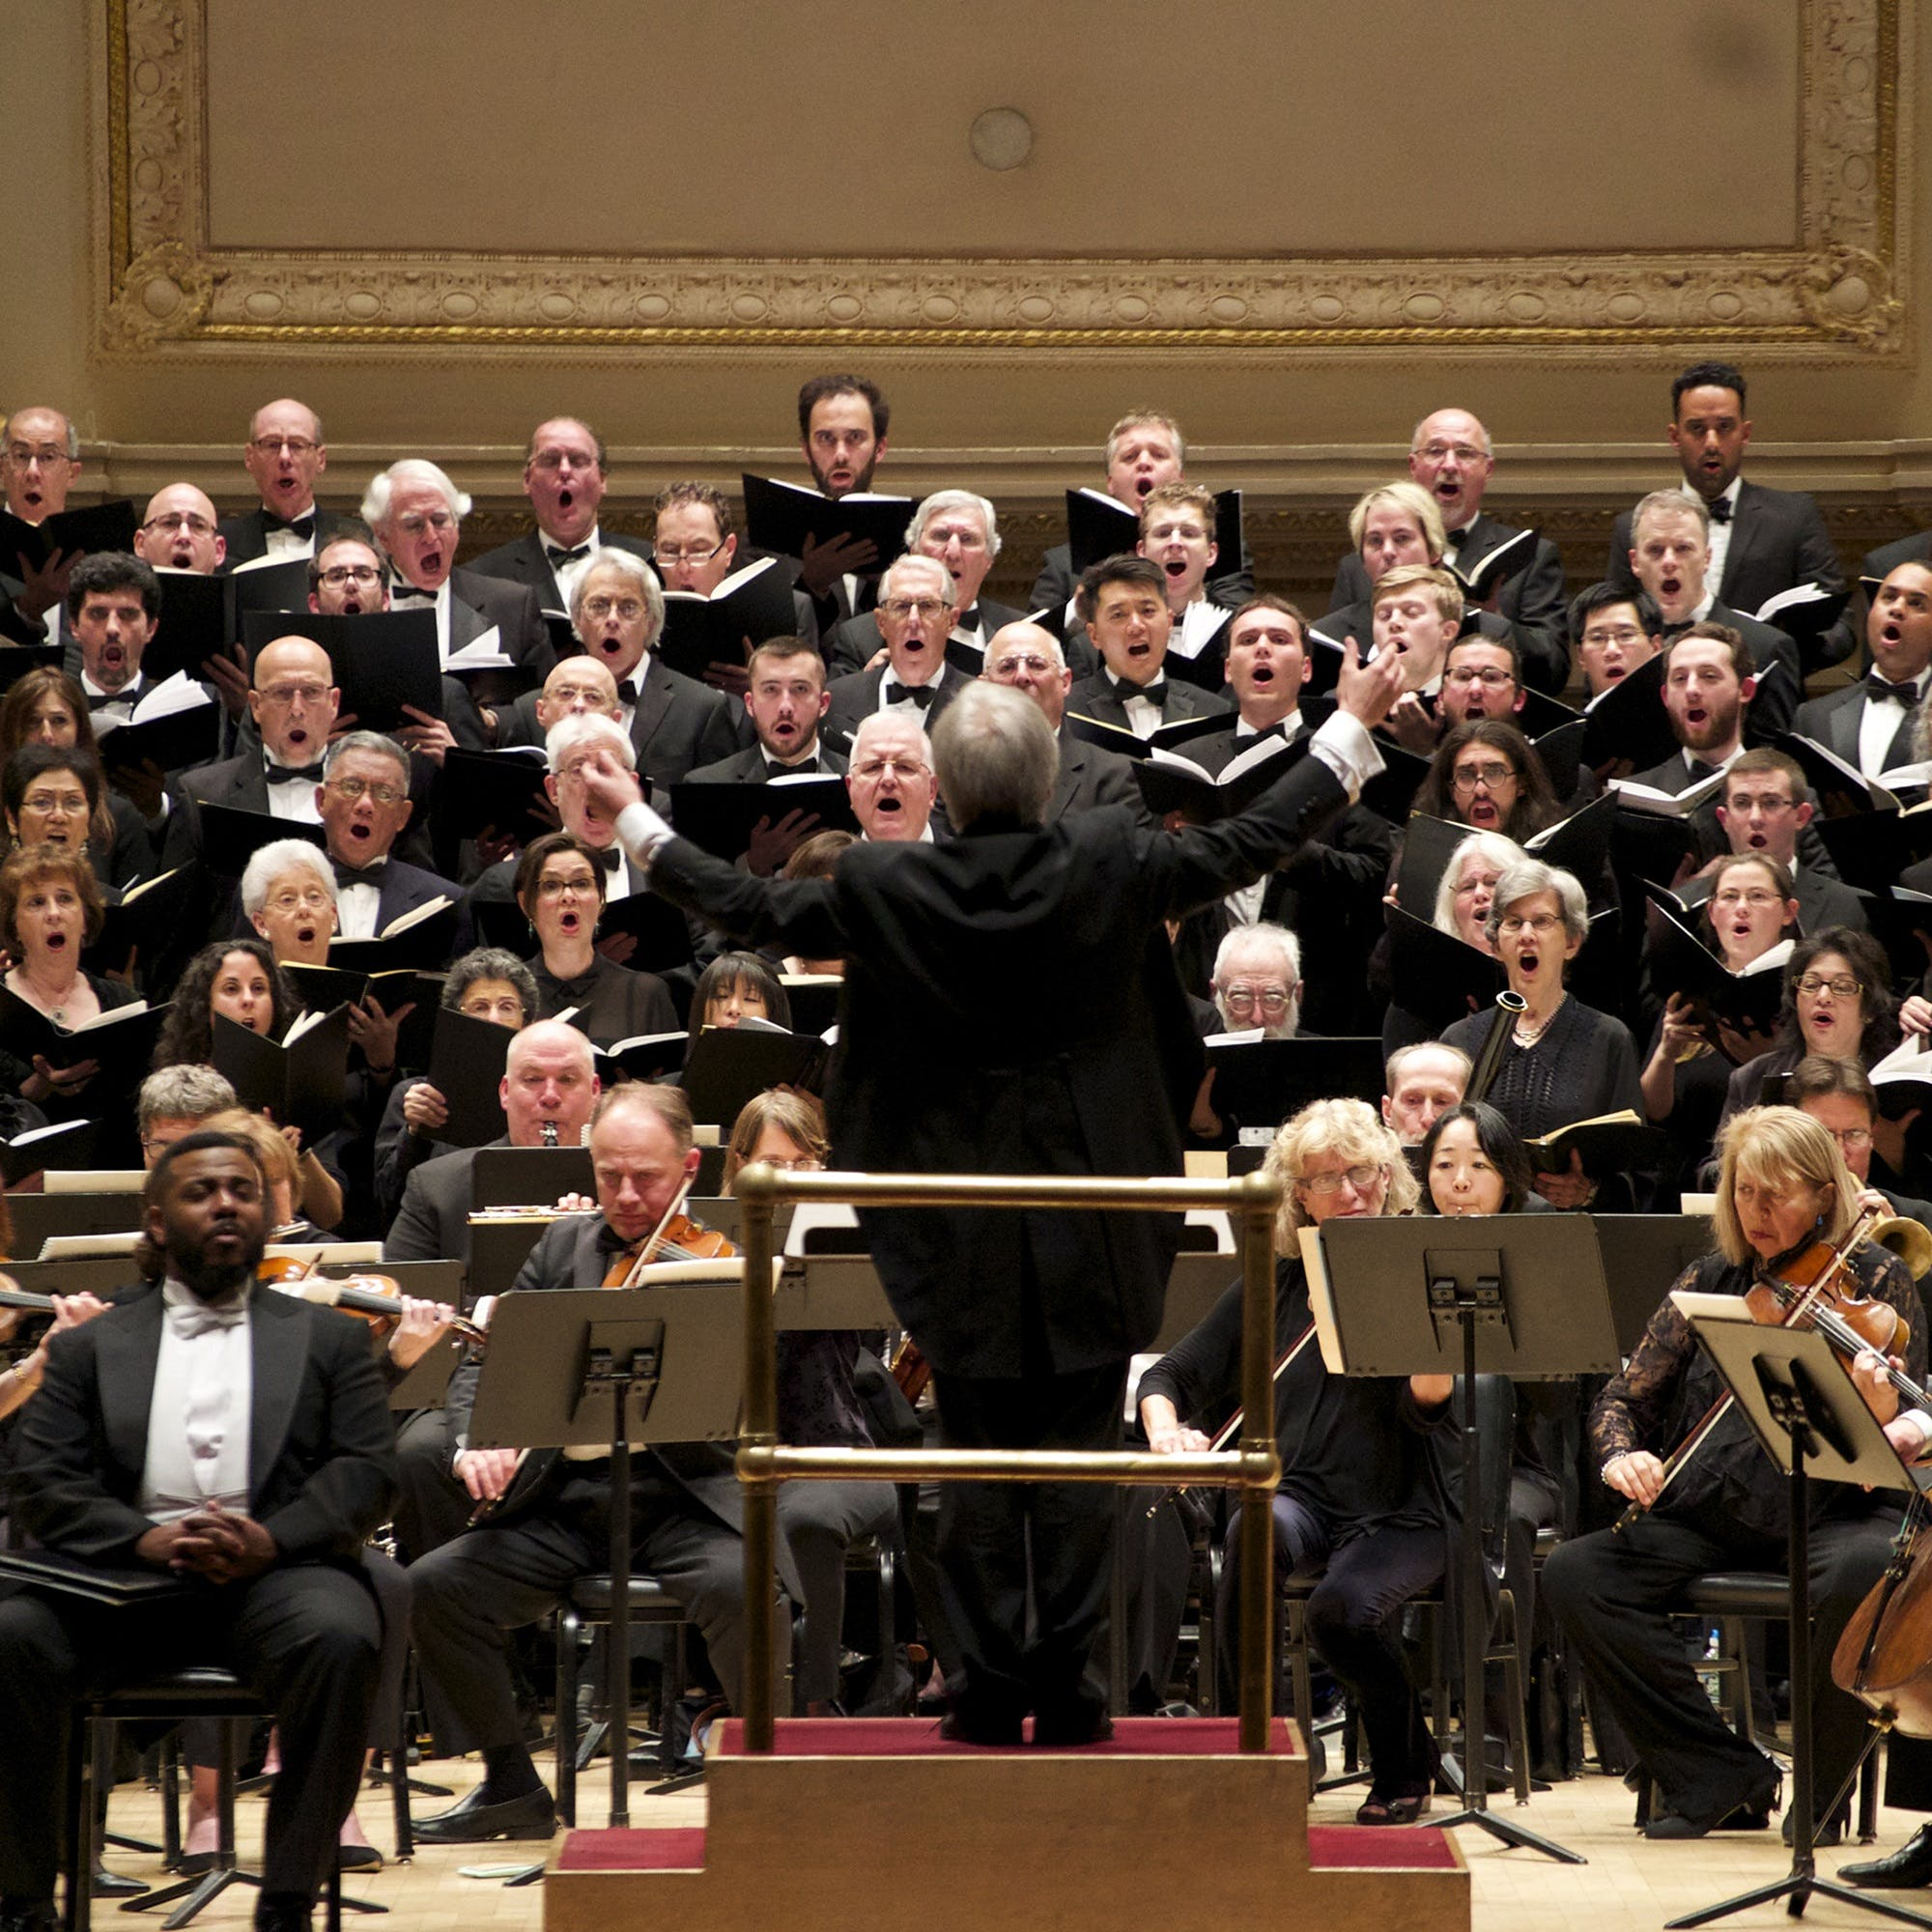 The Cecilia Chorus of New York with Orchestra | Dec 14, 2019 at 8